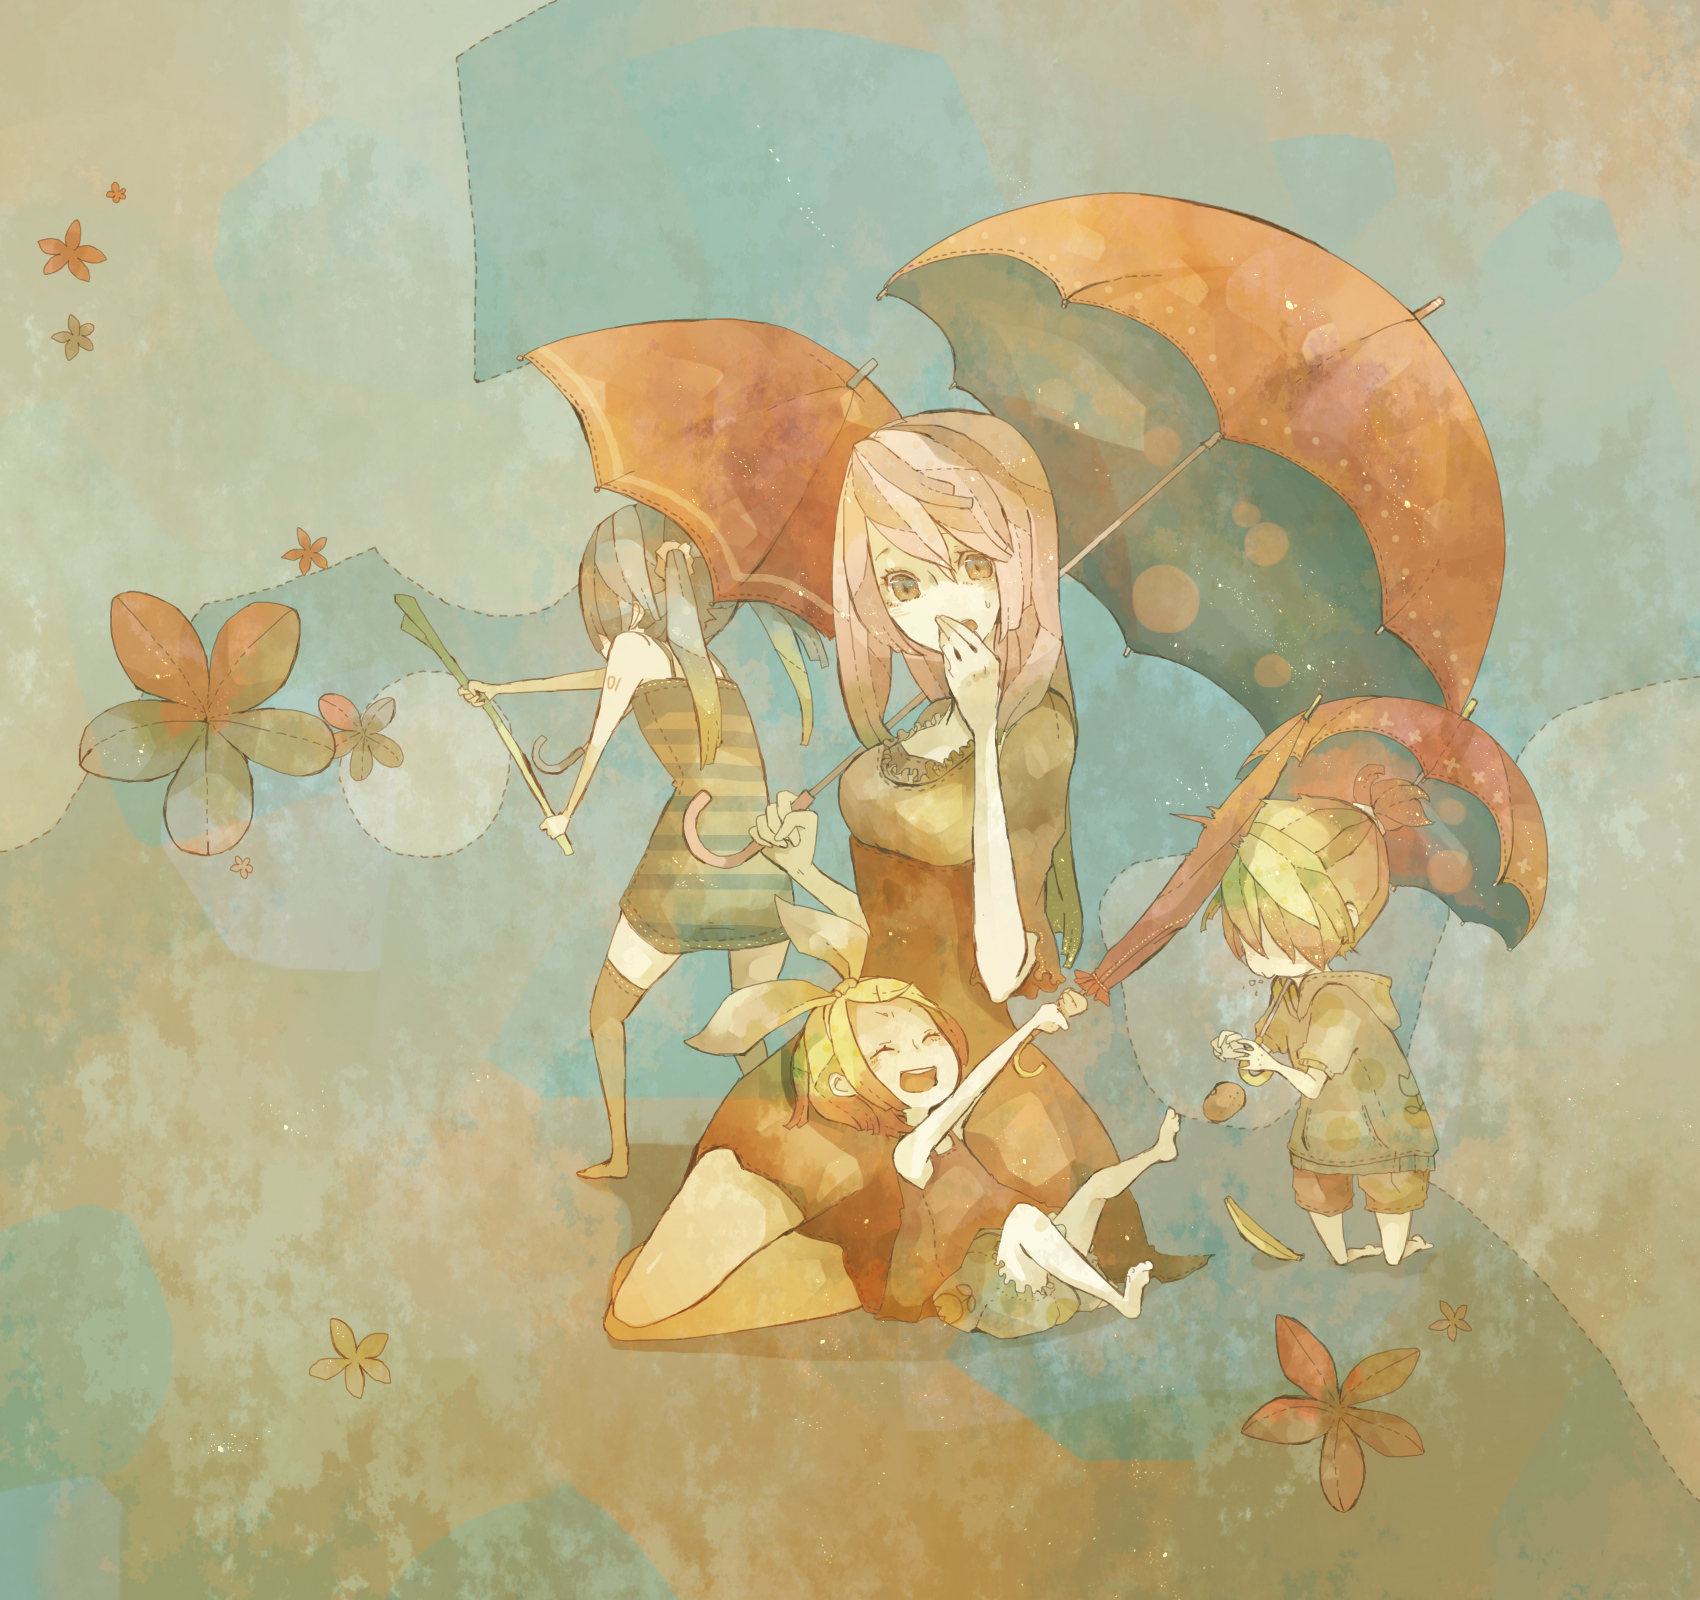 Sad vocaloid page 14 zerochan anime image board vocaloid download vocaloid image sciox Choice Image